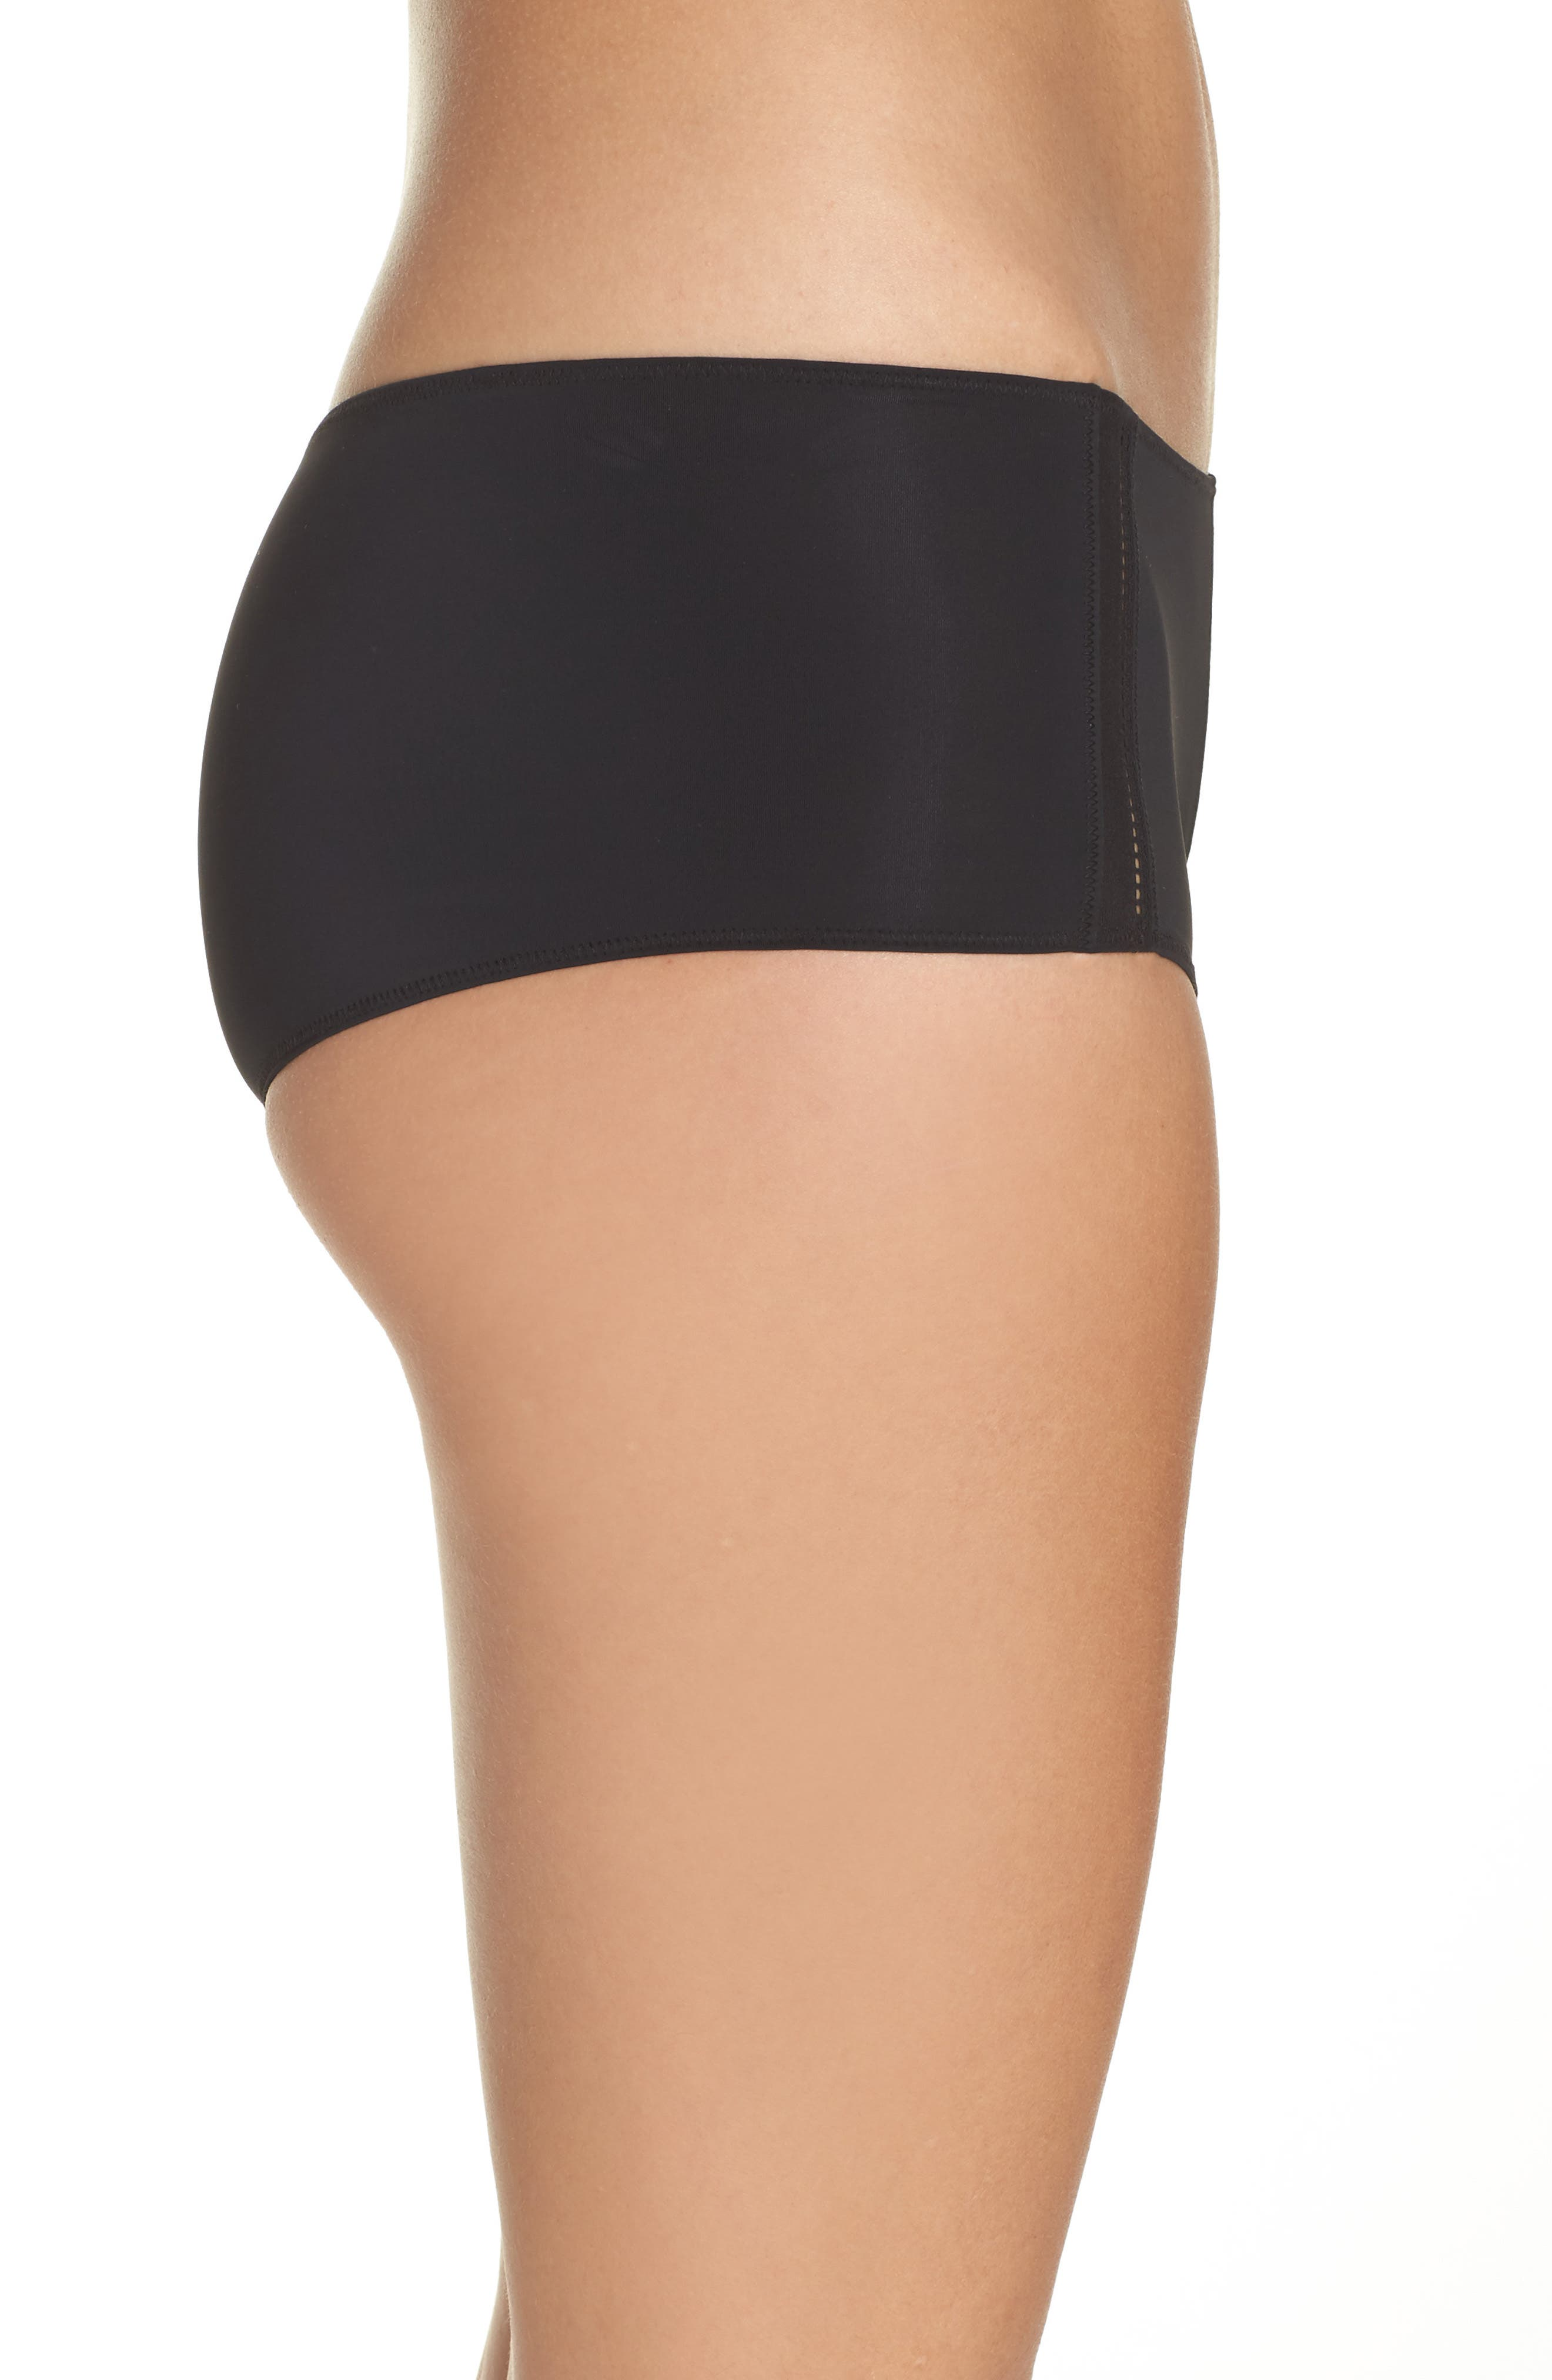 Intimately FP Truth or Dare Boyshorts,                             Alternate thumbnail 3, color,                             001